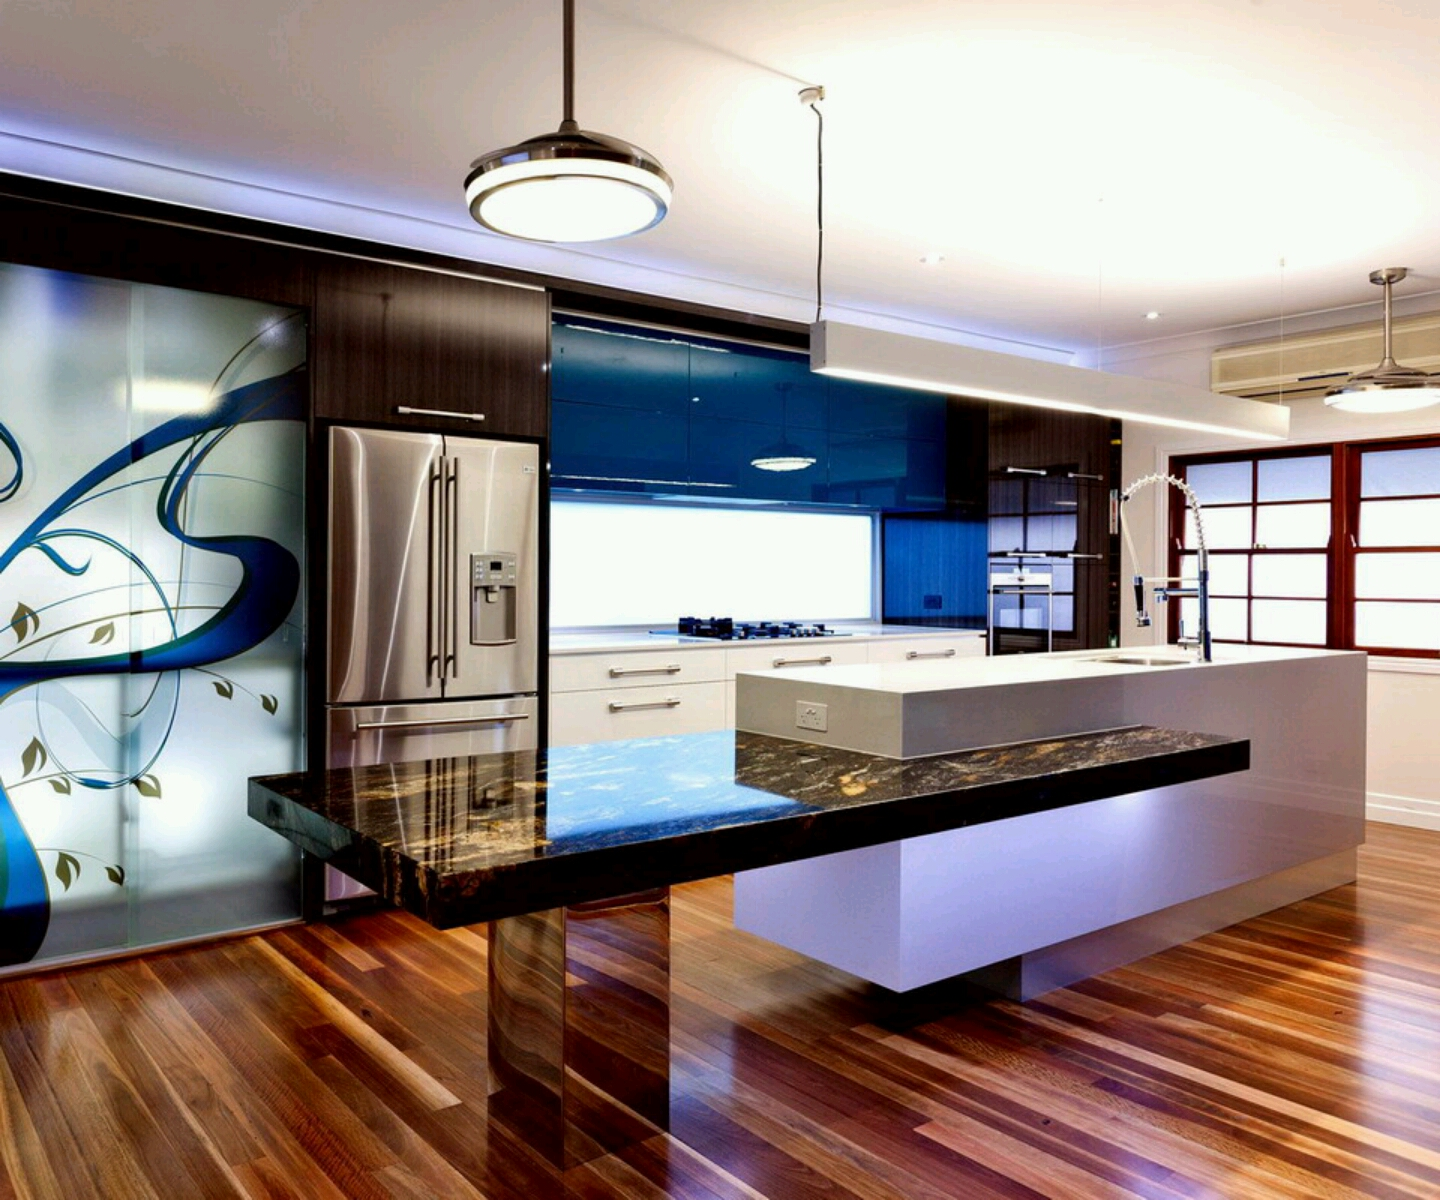 Ultra modern kitchen designs ideas new home designs for Best new kitchen ideas